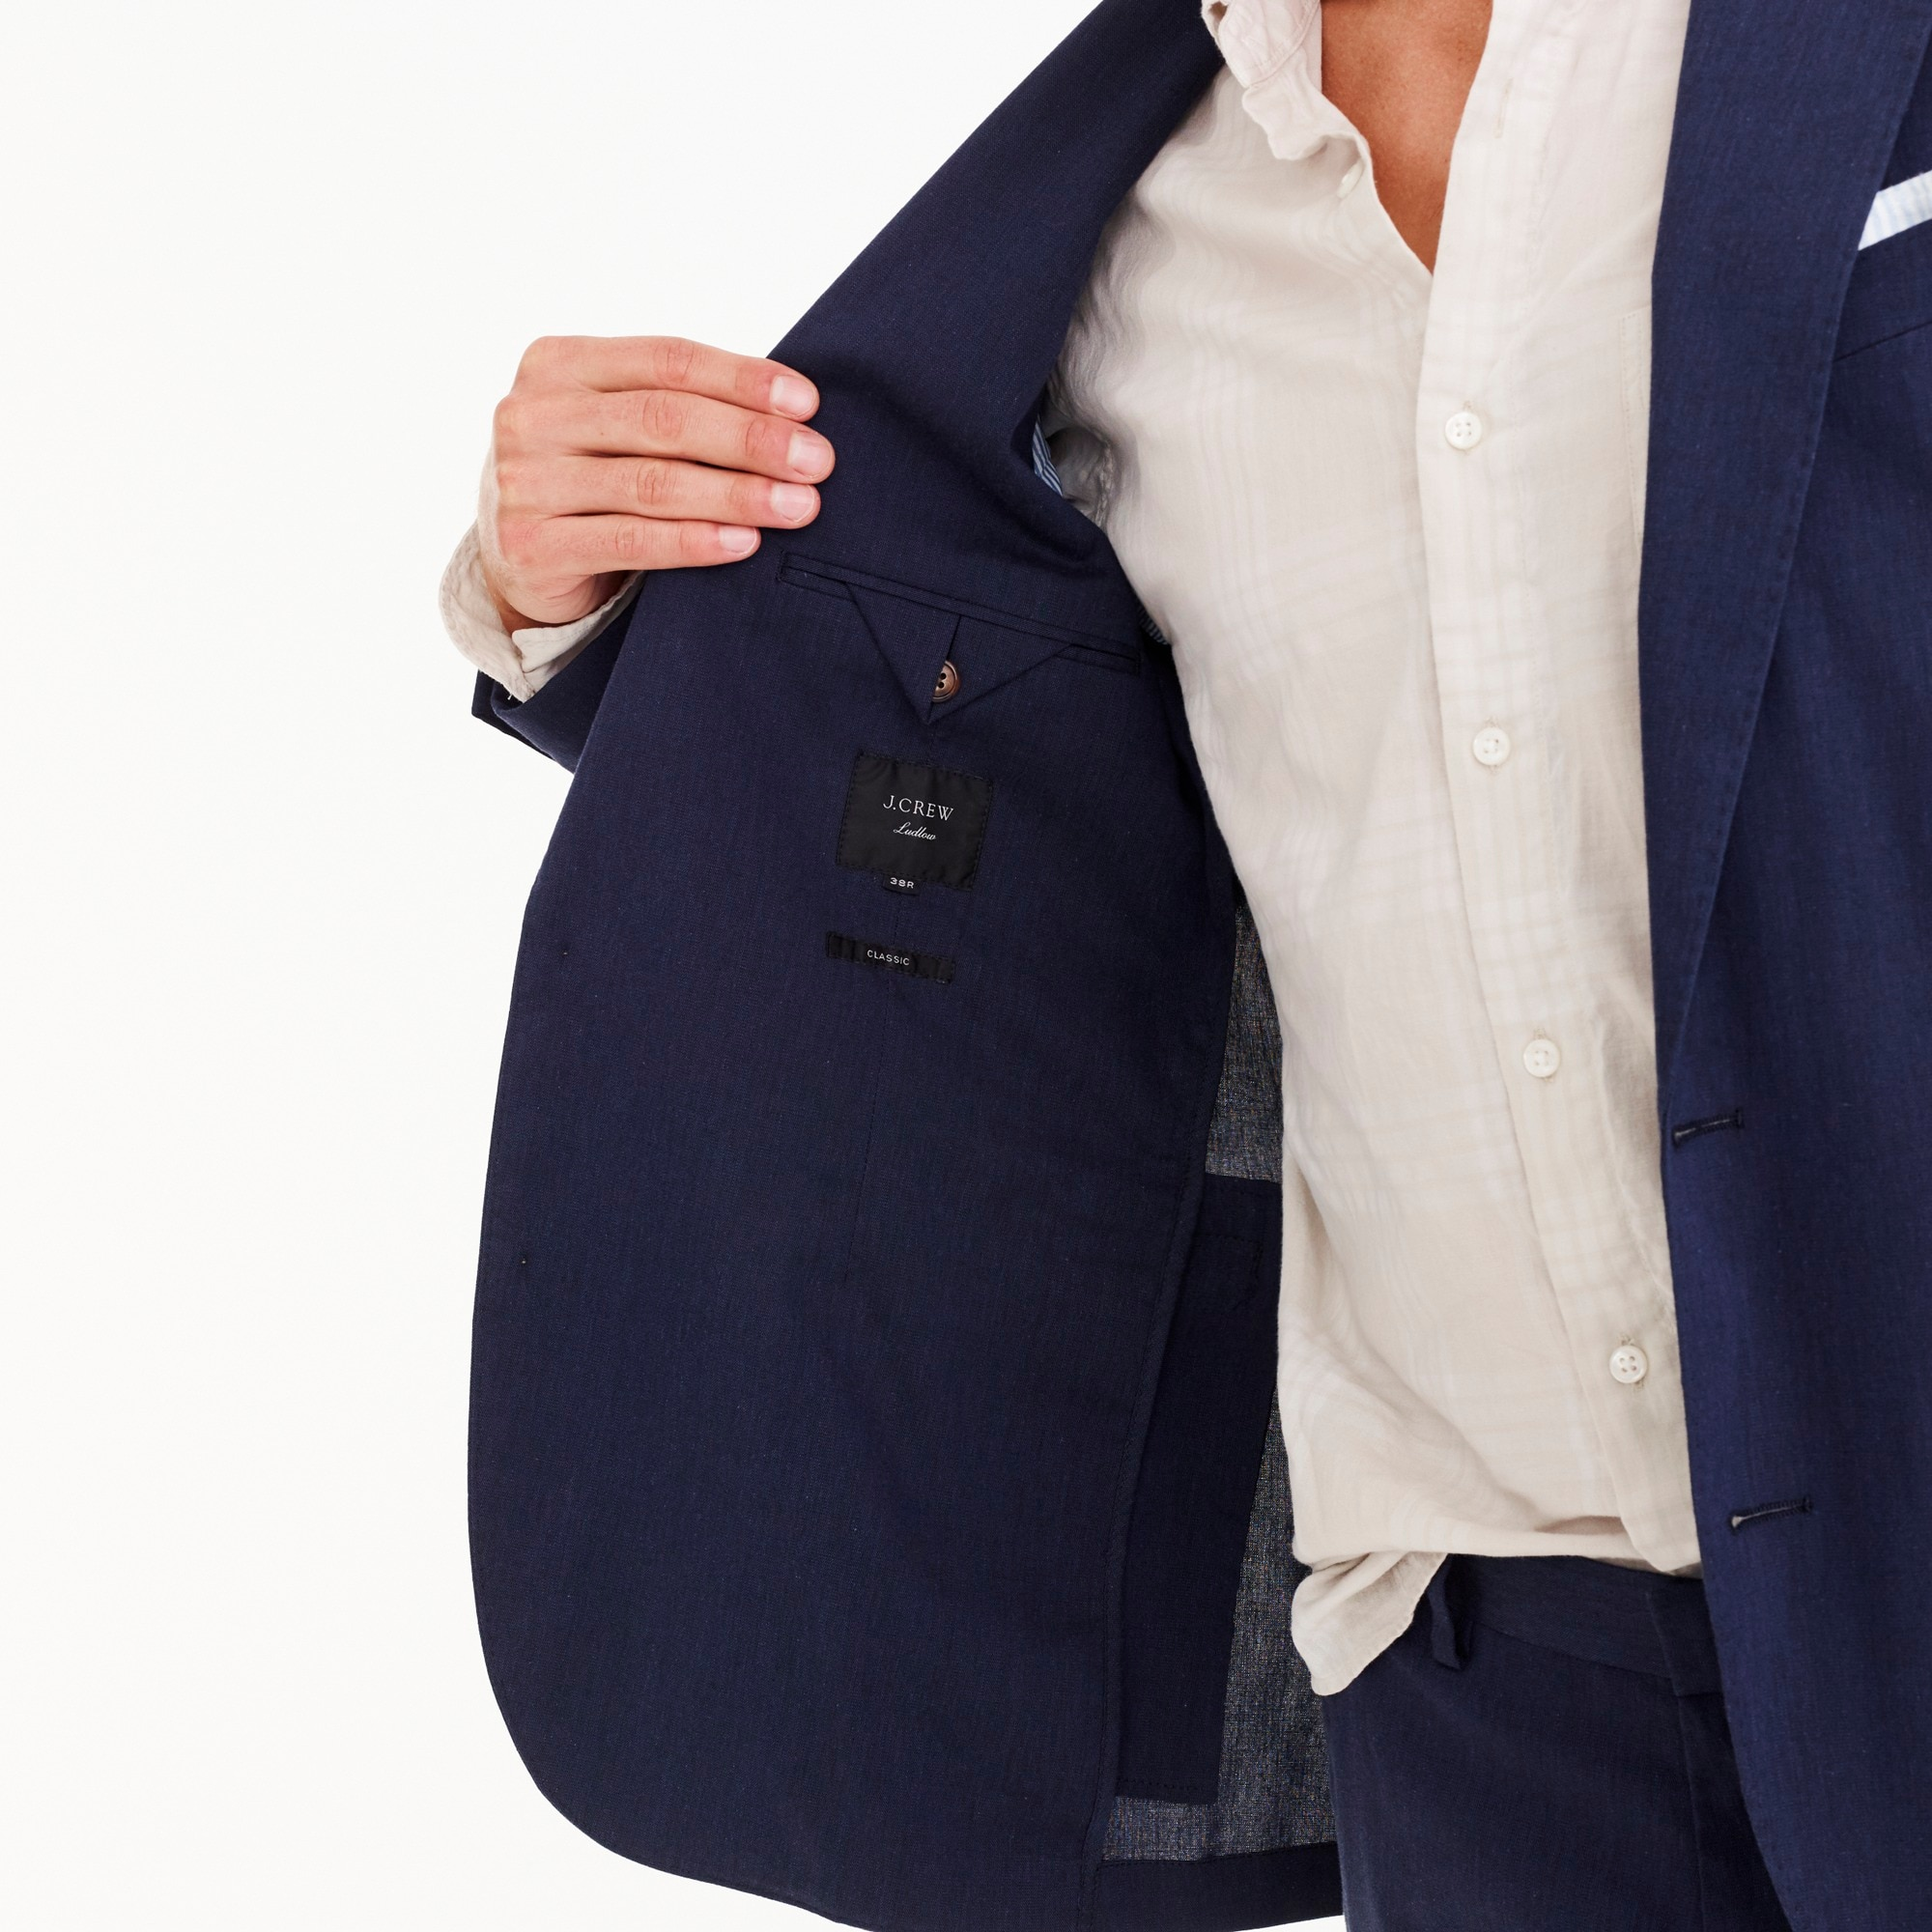 Image 5 for Ludlow Classic-fit unstructured suit jacket in stretch cotton